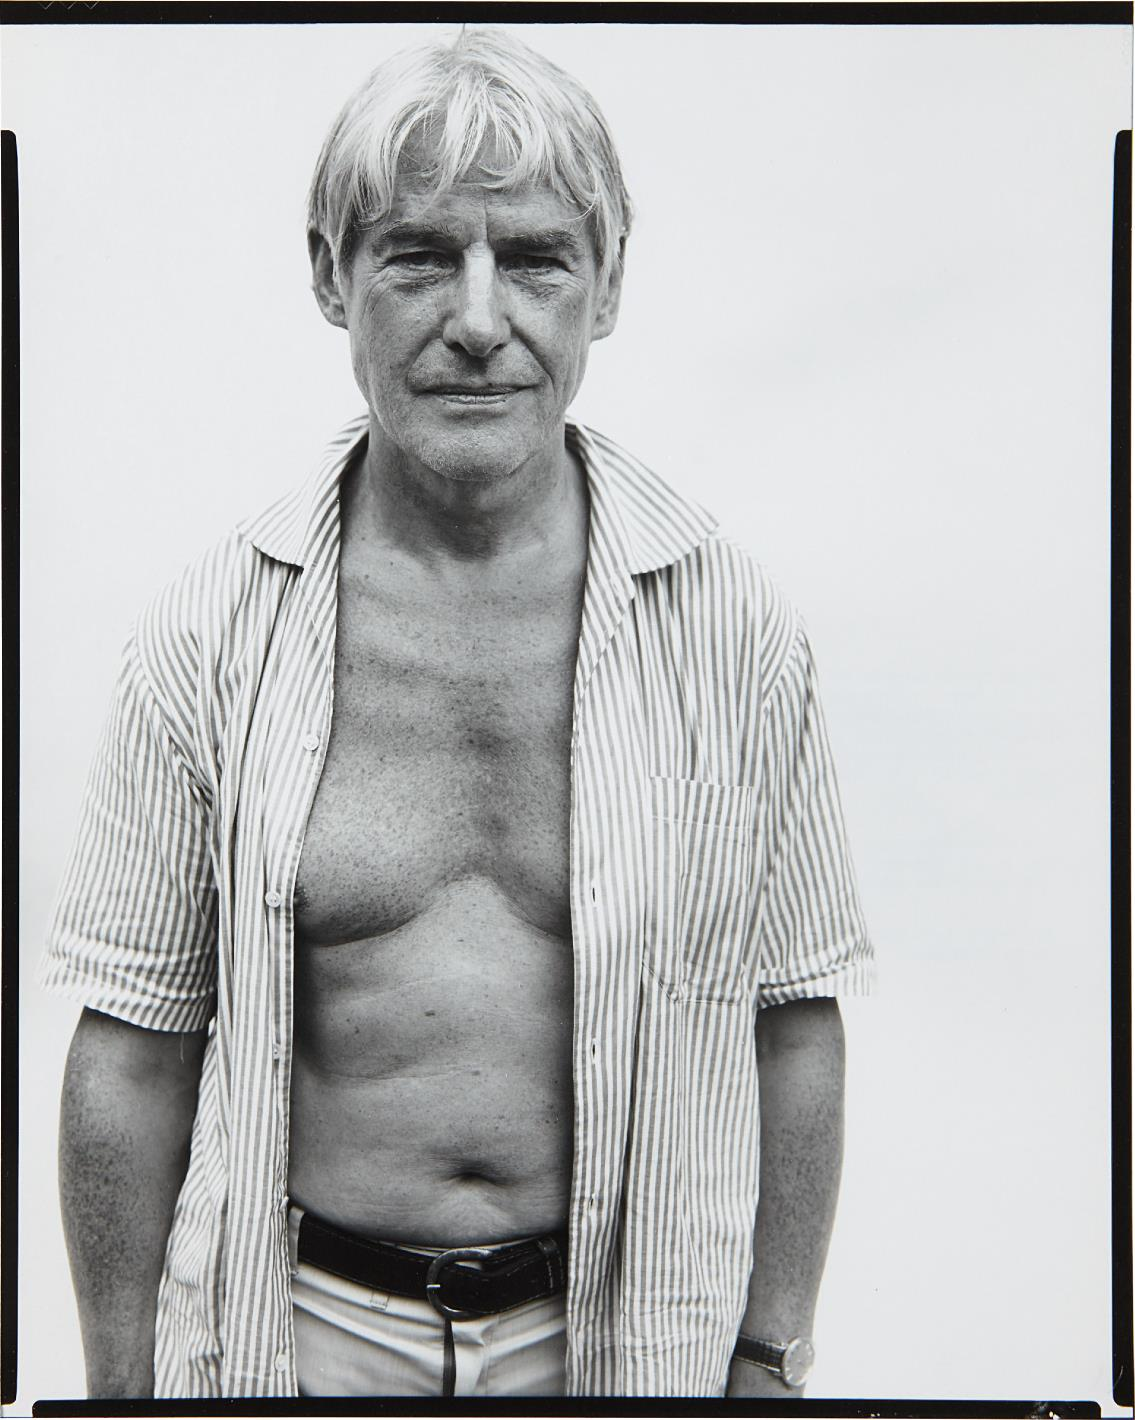 Richard Avedon-Willem De Kooning, Painter, Springs, Long Island, August 18, 1969-1969